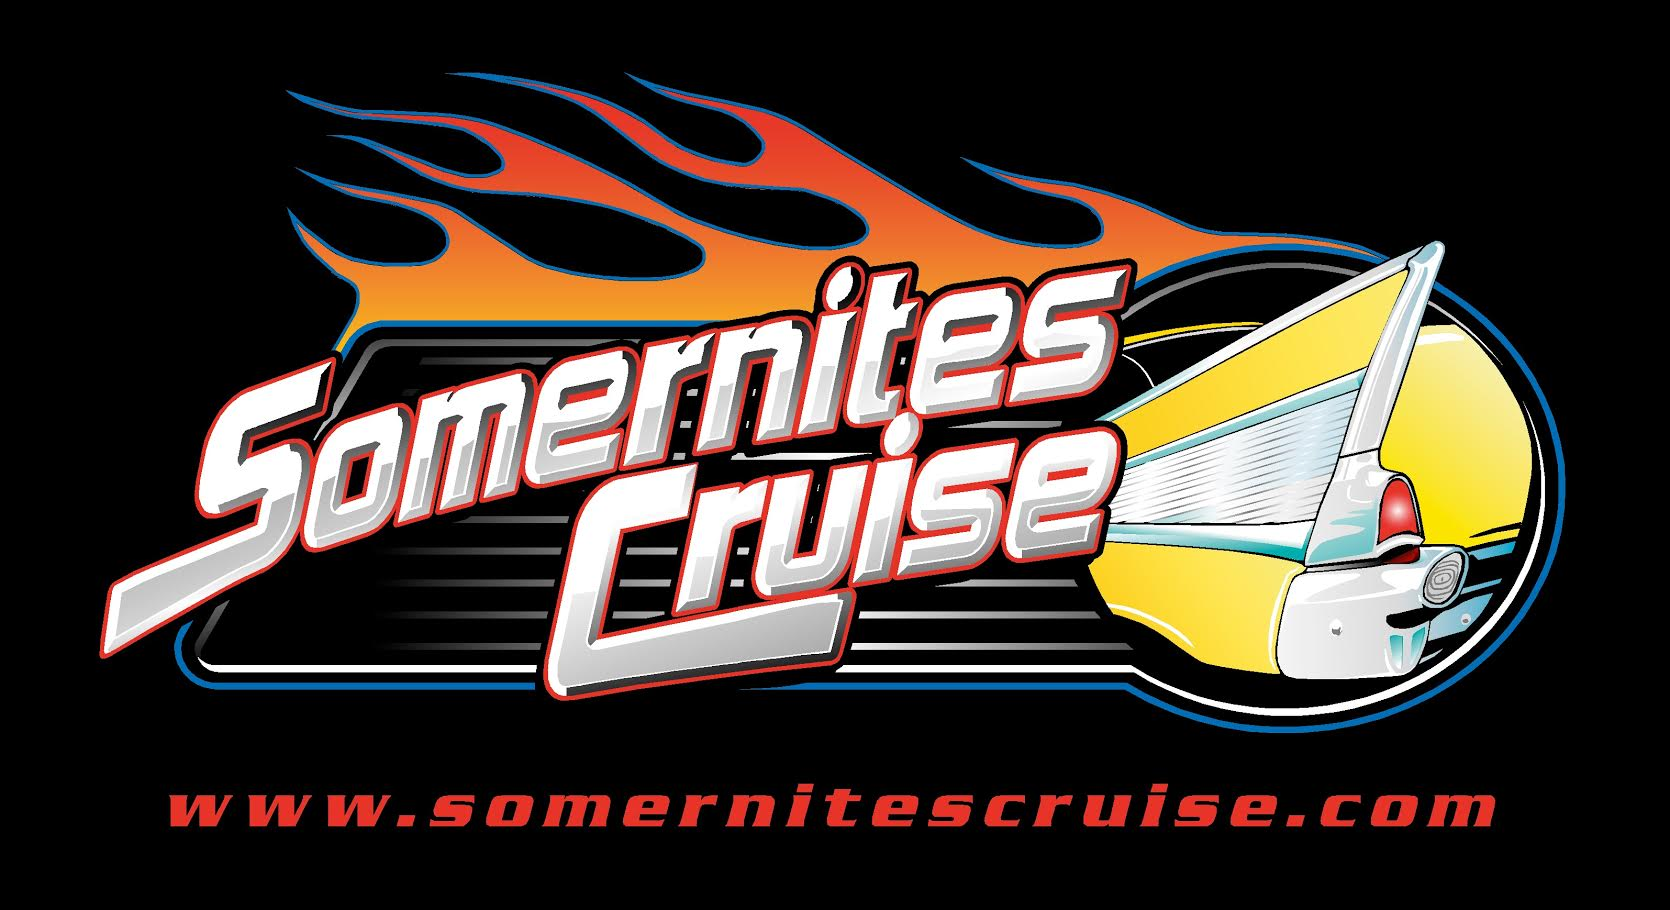 somernites cruise